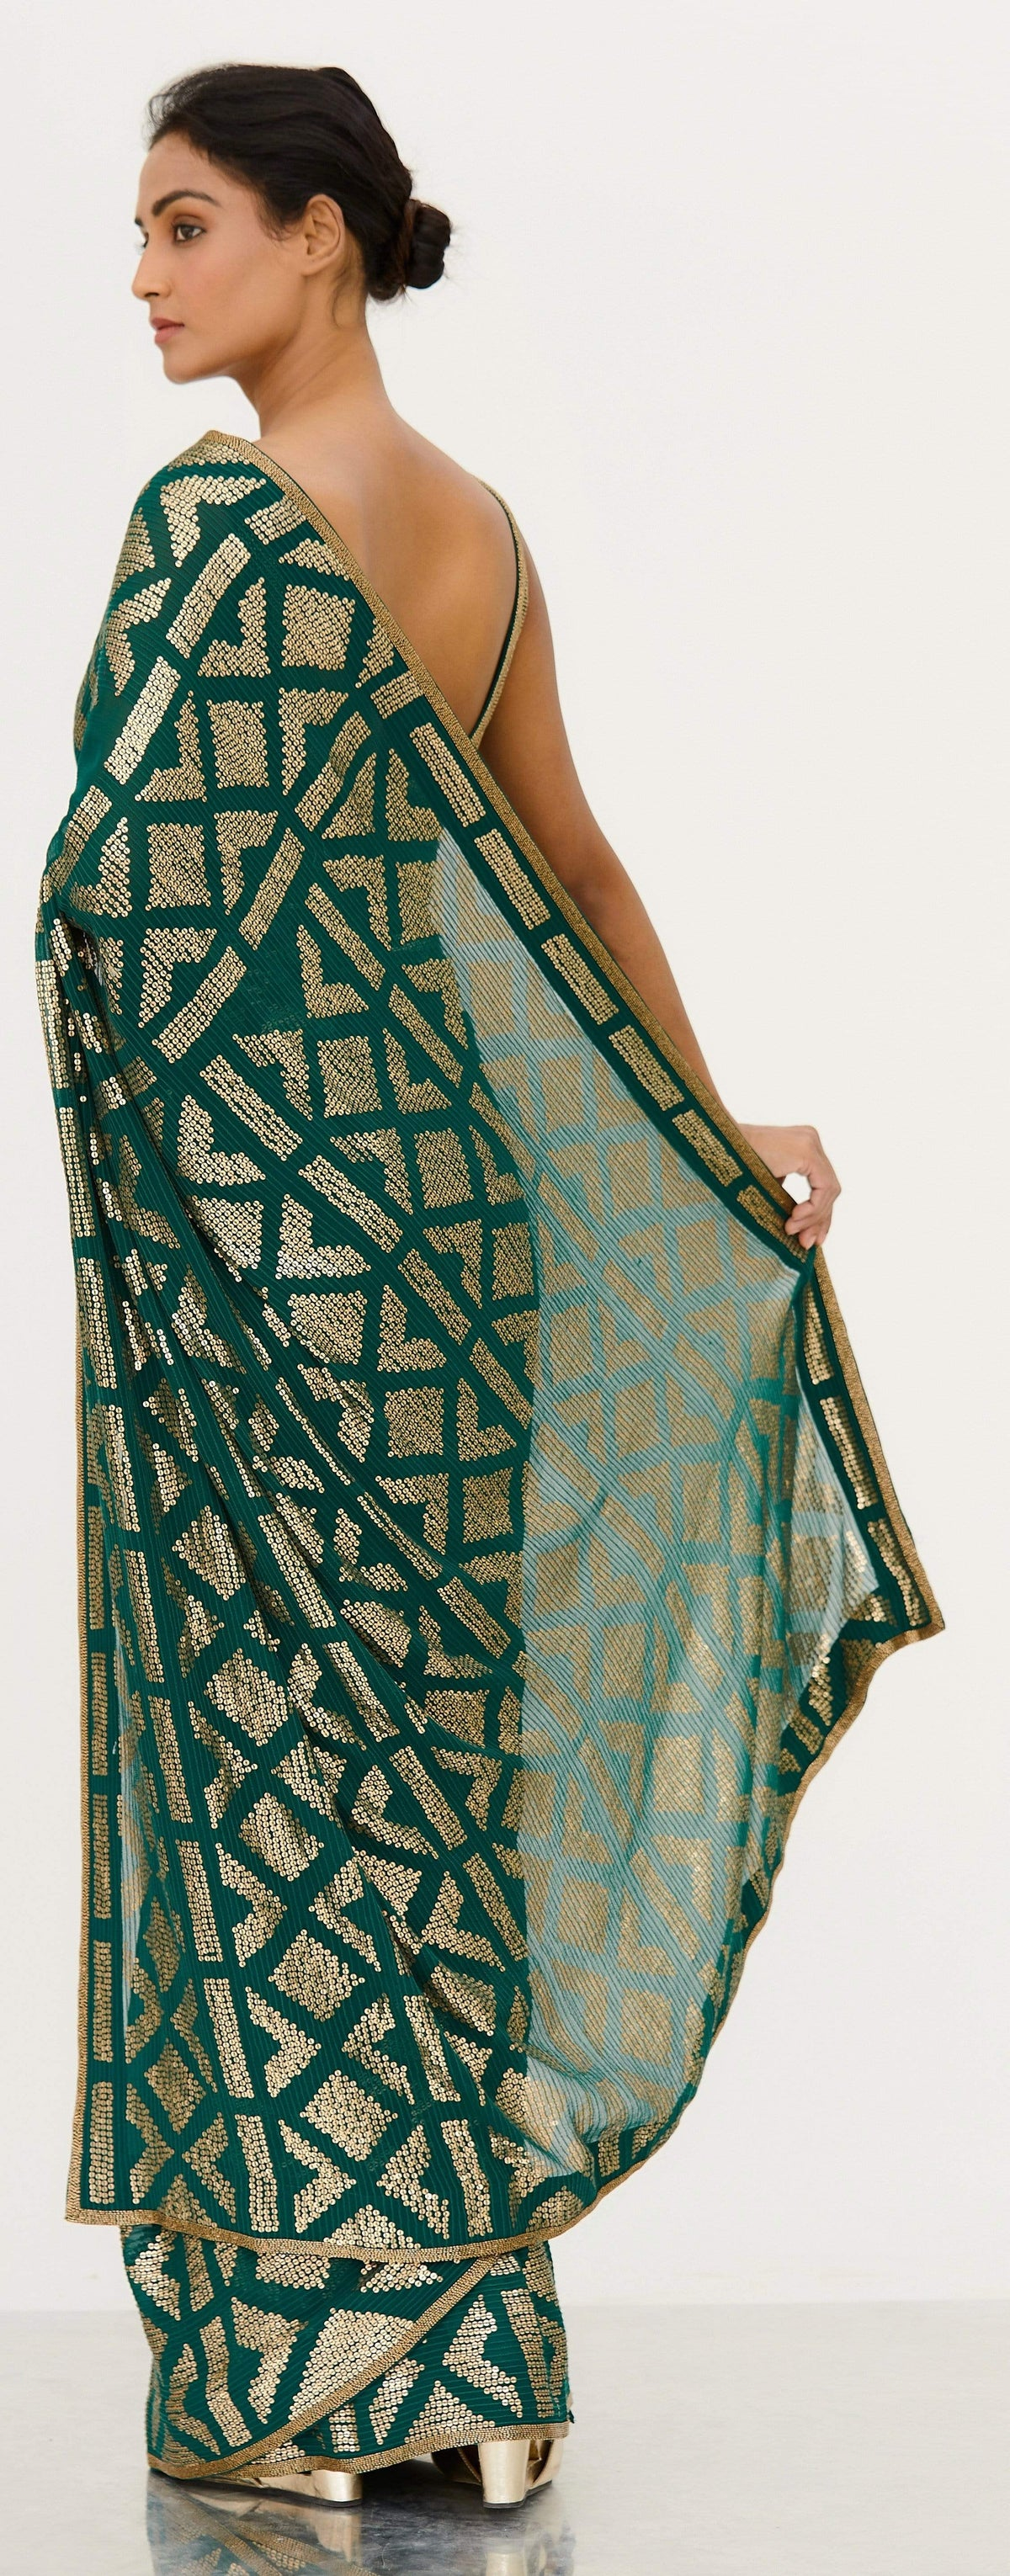 Nakul Sen Sarees Emerald chiffon embroidered saree